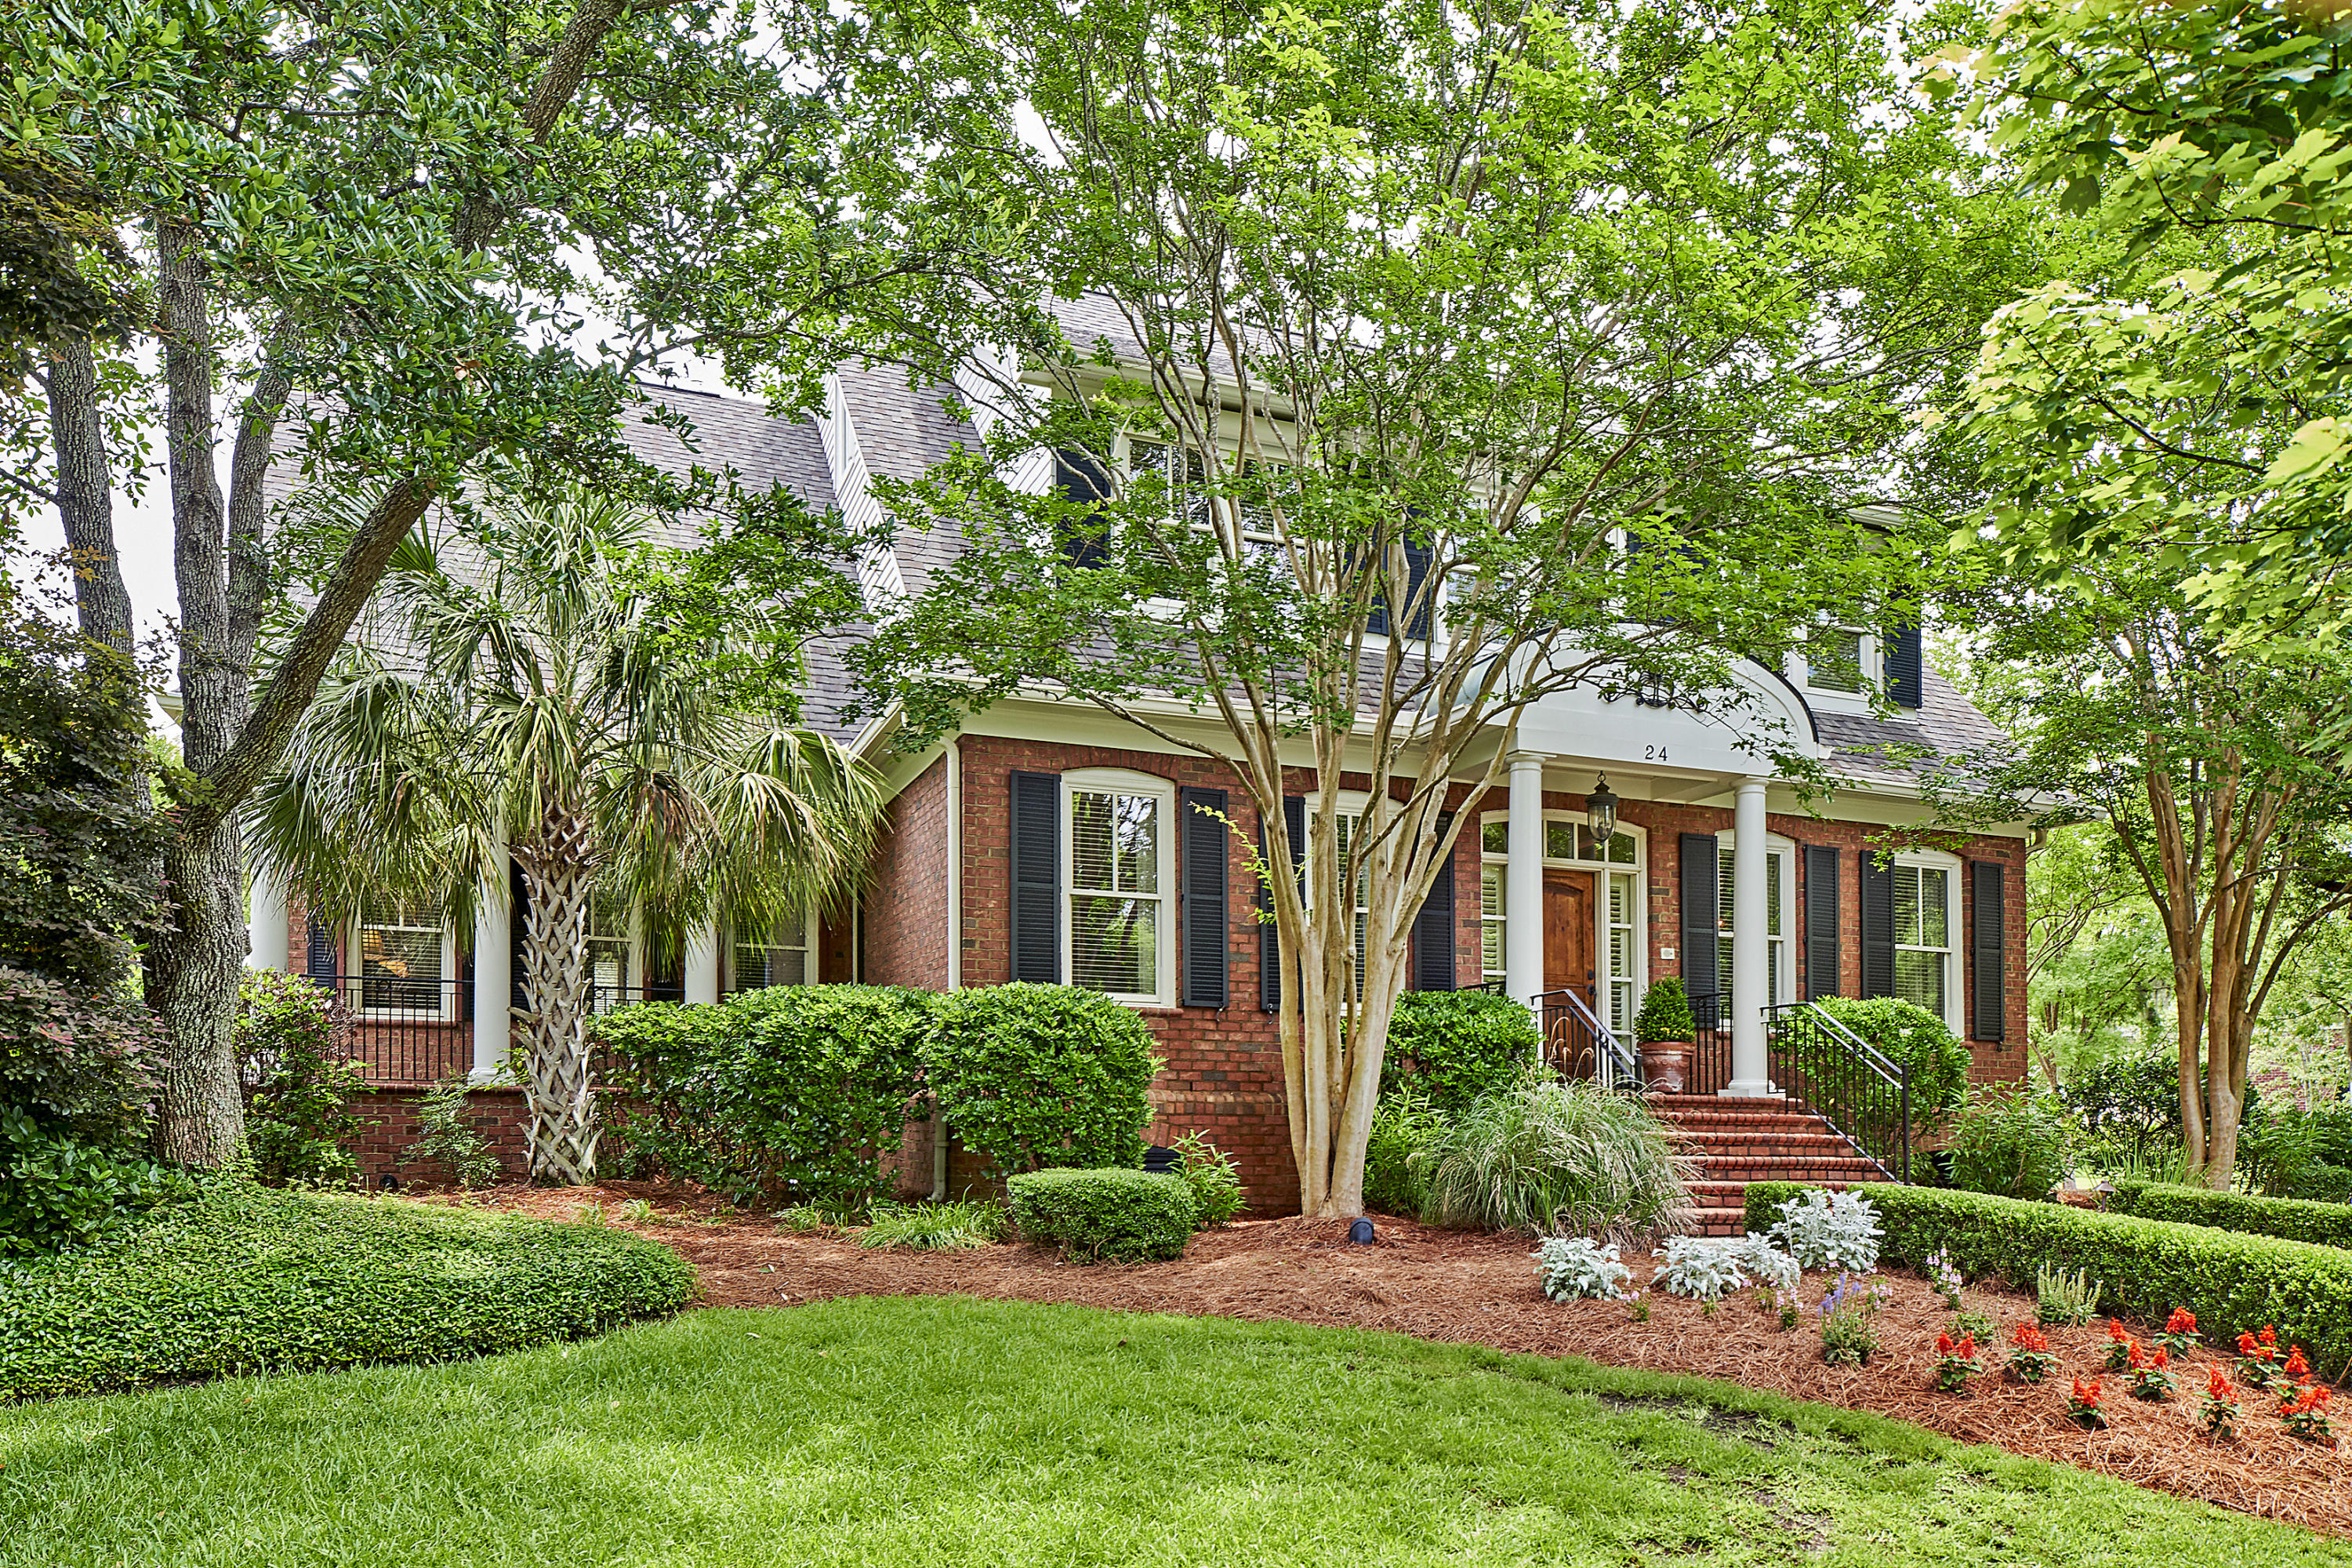 Photo of 24 Pagett St, Charleston, SC 29492